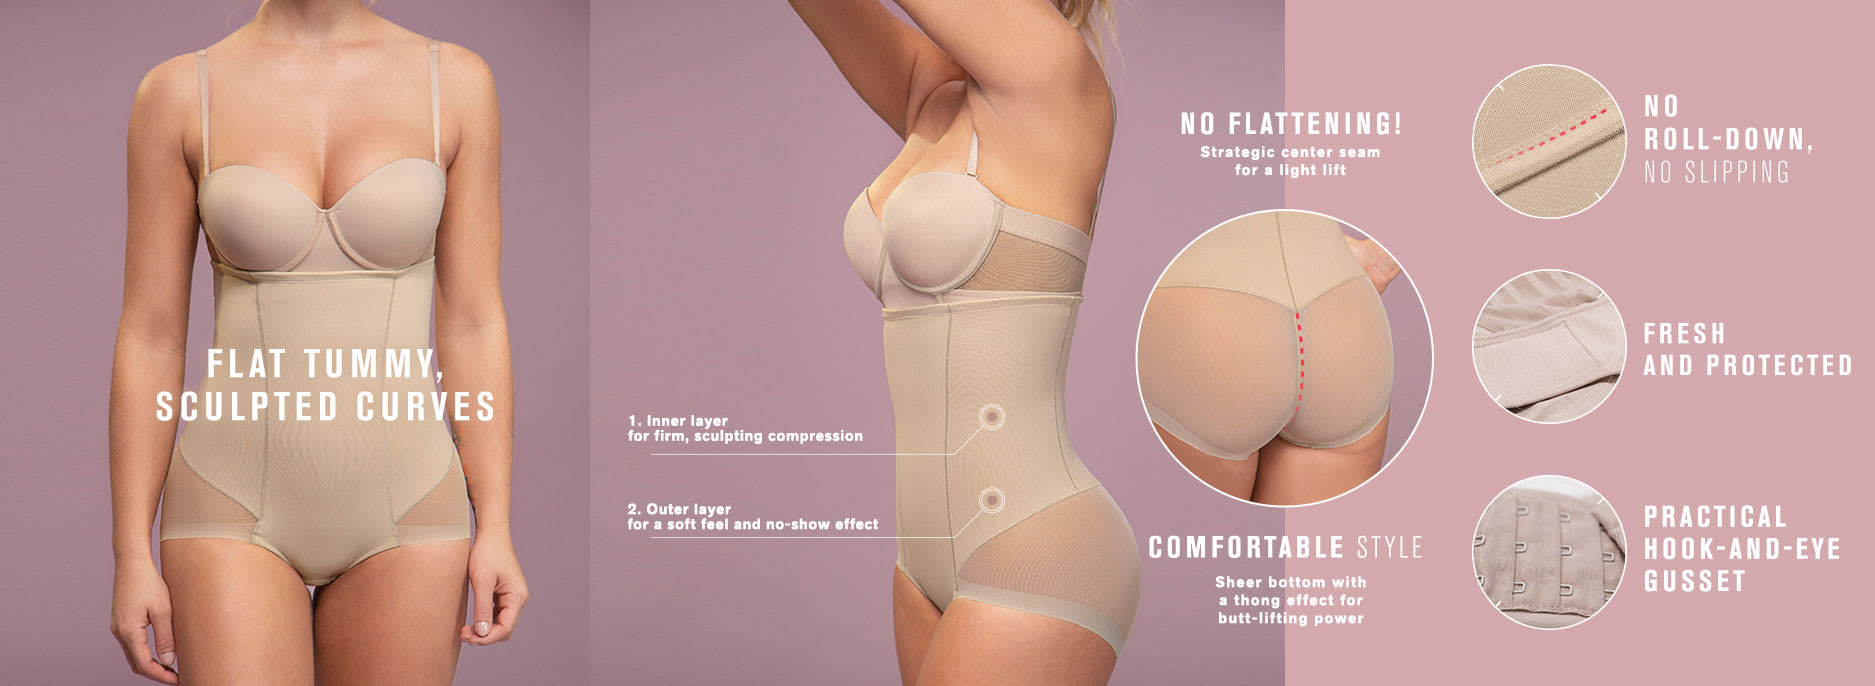 Shop full trimmer body shapers online at Lovebird Lingerie. Buy Full Trimmer from India's Premium Lingerie Brand Lovebird Lingerie available in many styles, colors and with perfect fit ✯ Quality Assured